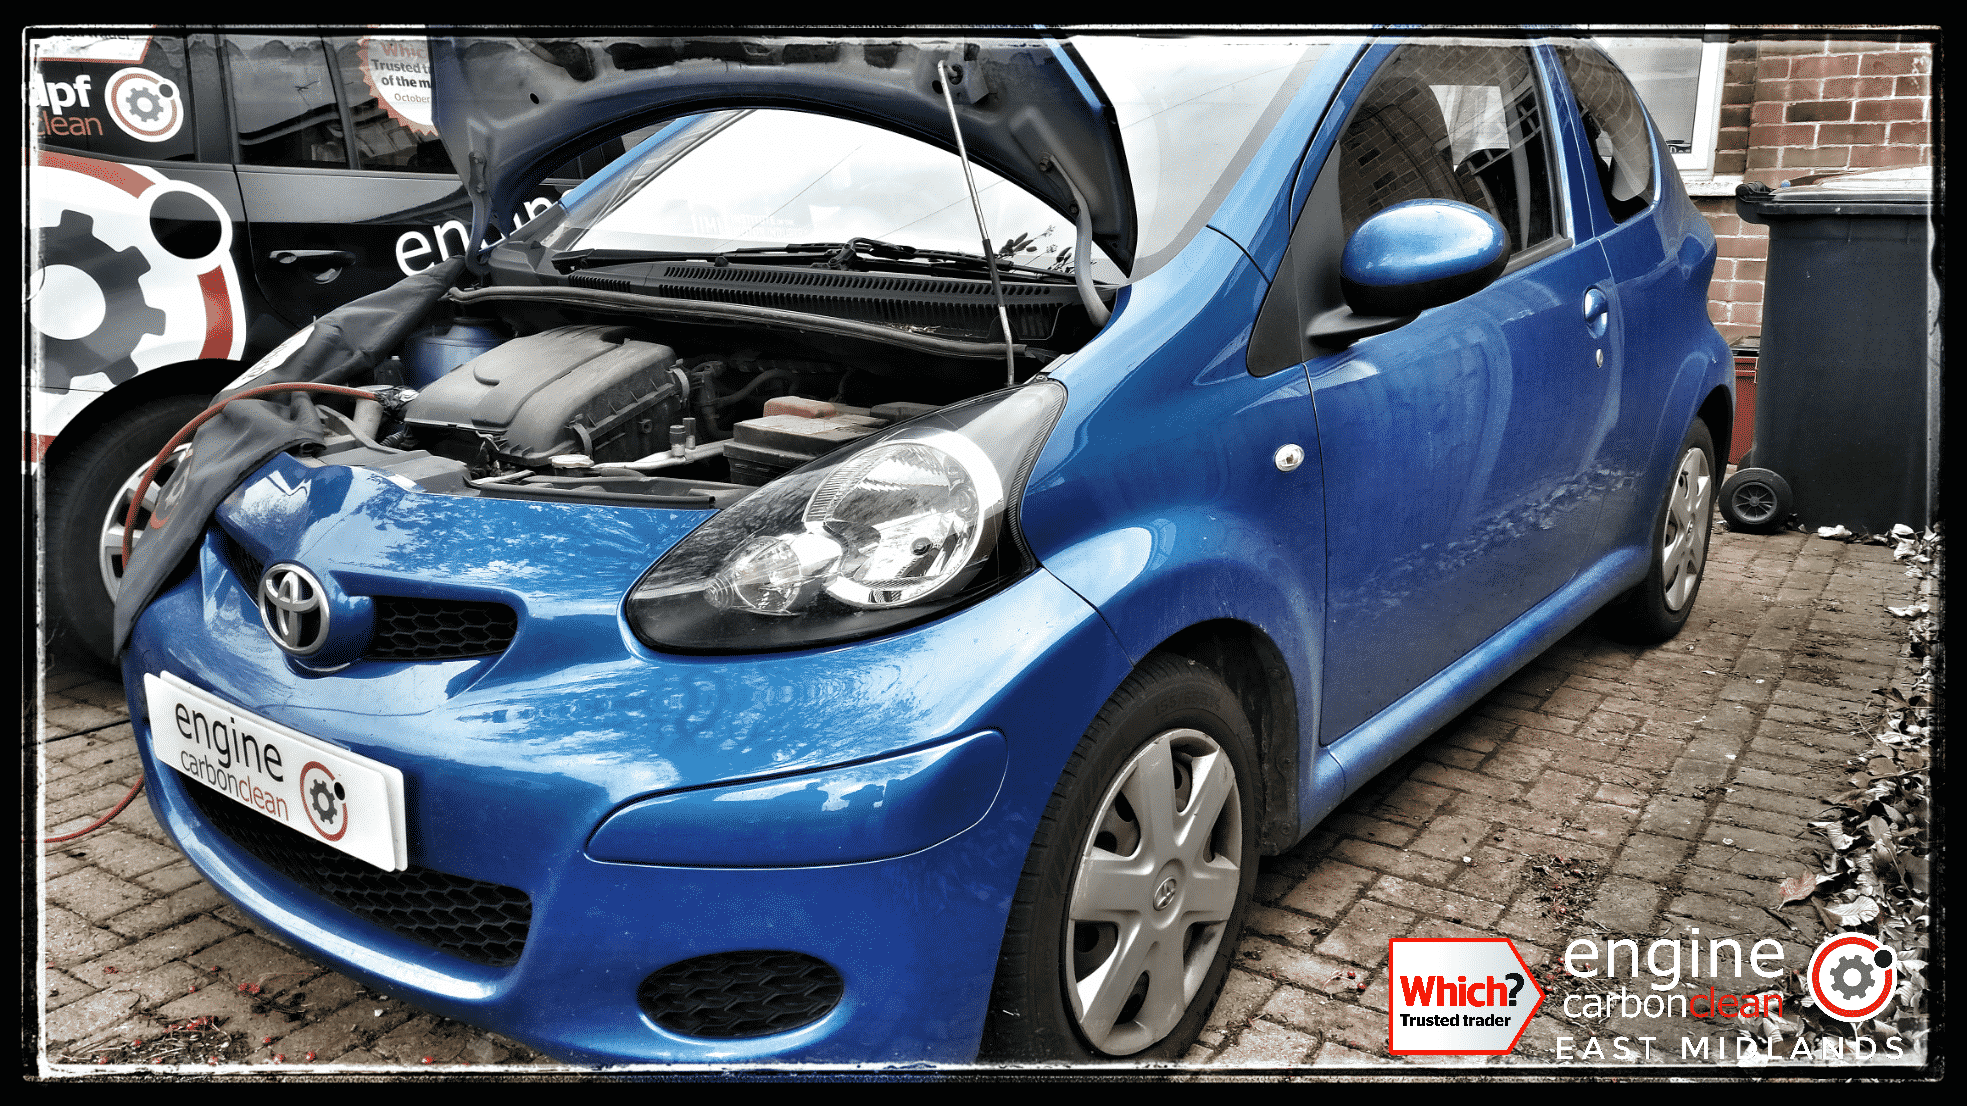 Engine Carbon Clean on a Toyota Aygo 1.0 petrol (2010 - 104,241 miles)